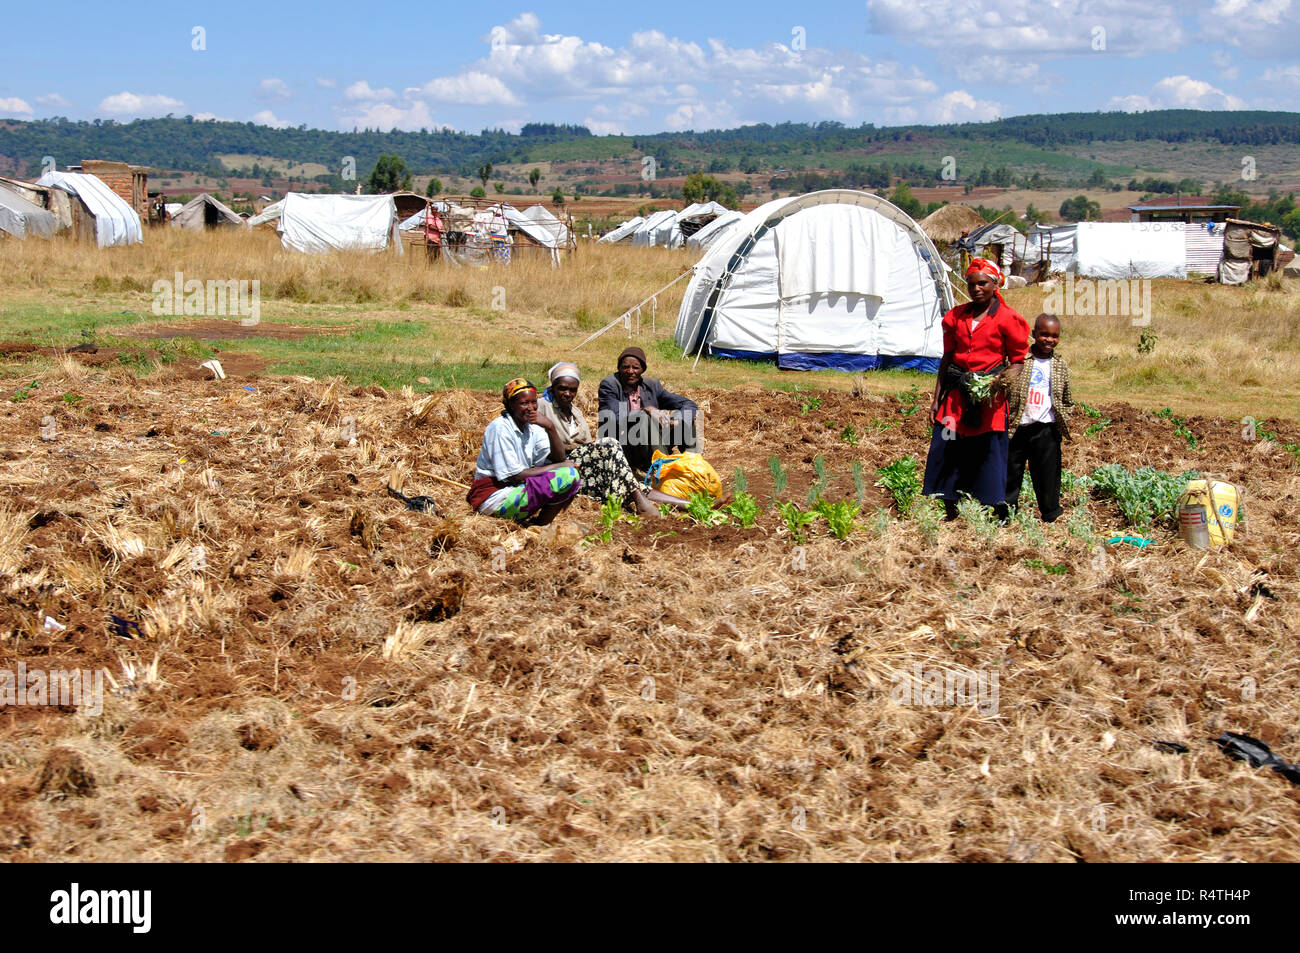 Kenya Red Cross Refugie Camp in Eldoret, Rift Valley, where more than 100'000 people are still living in weak conditions. Stock Photo